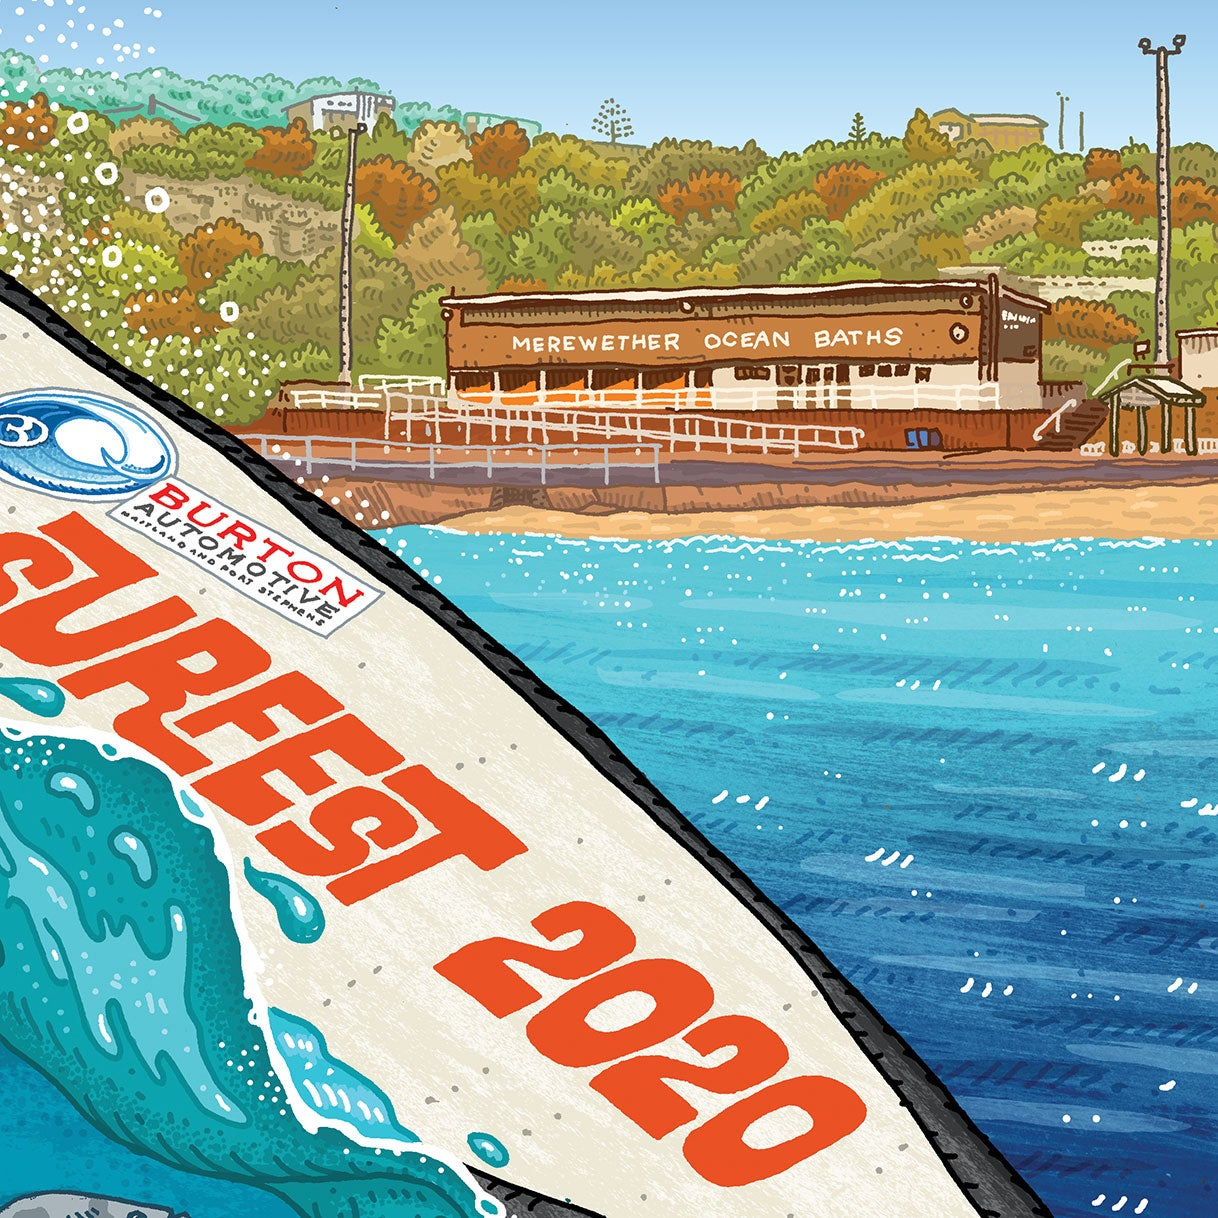 Image of Surfest 2020 Signed Digital Print